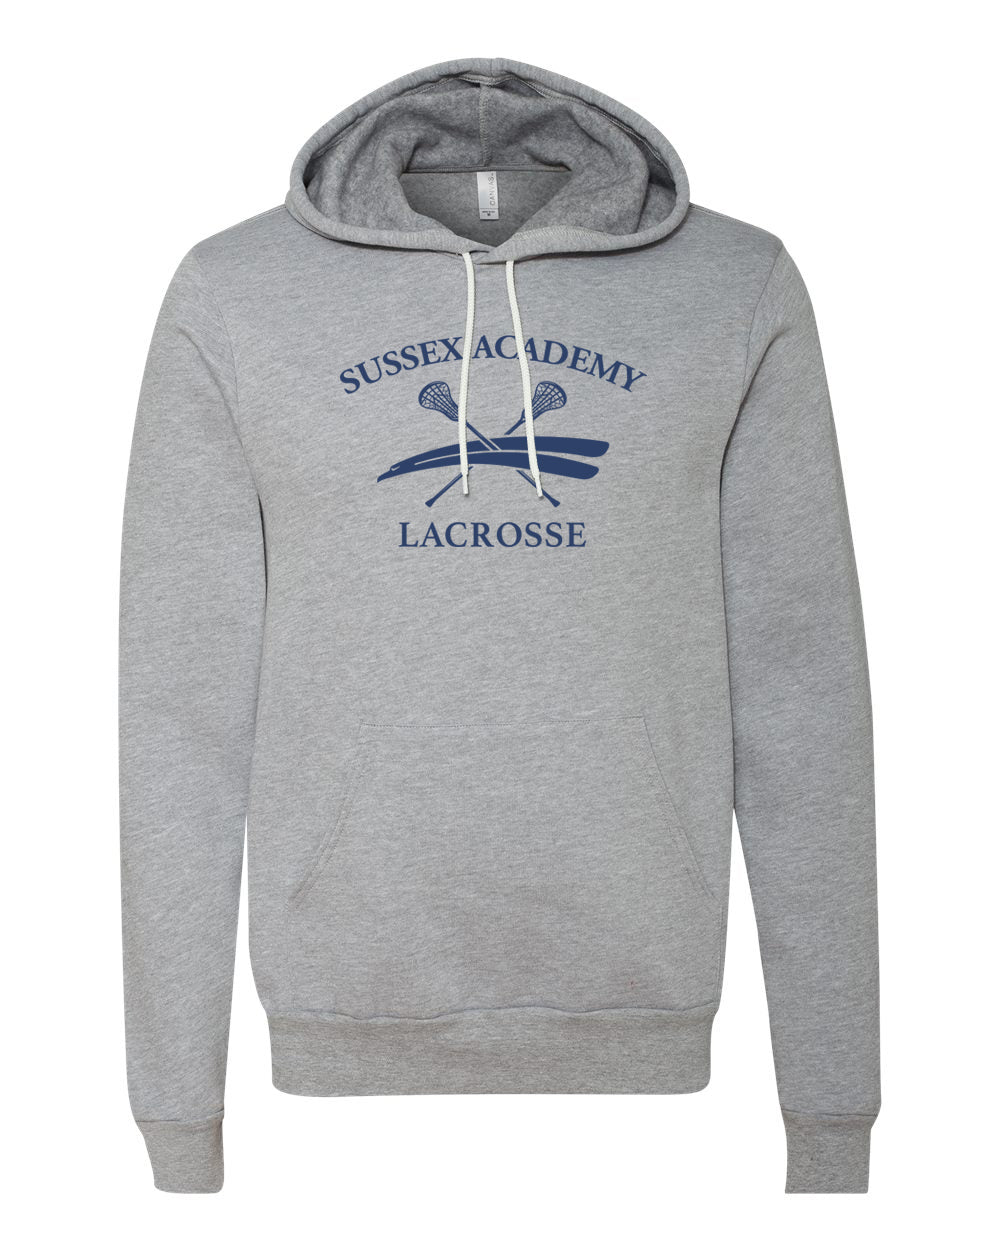 Bella+Canvas - Pullover Hooded Sweatshirt (ADULT)